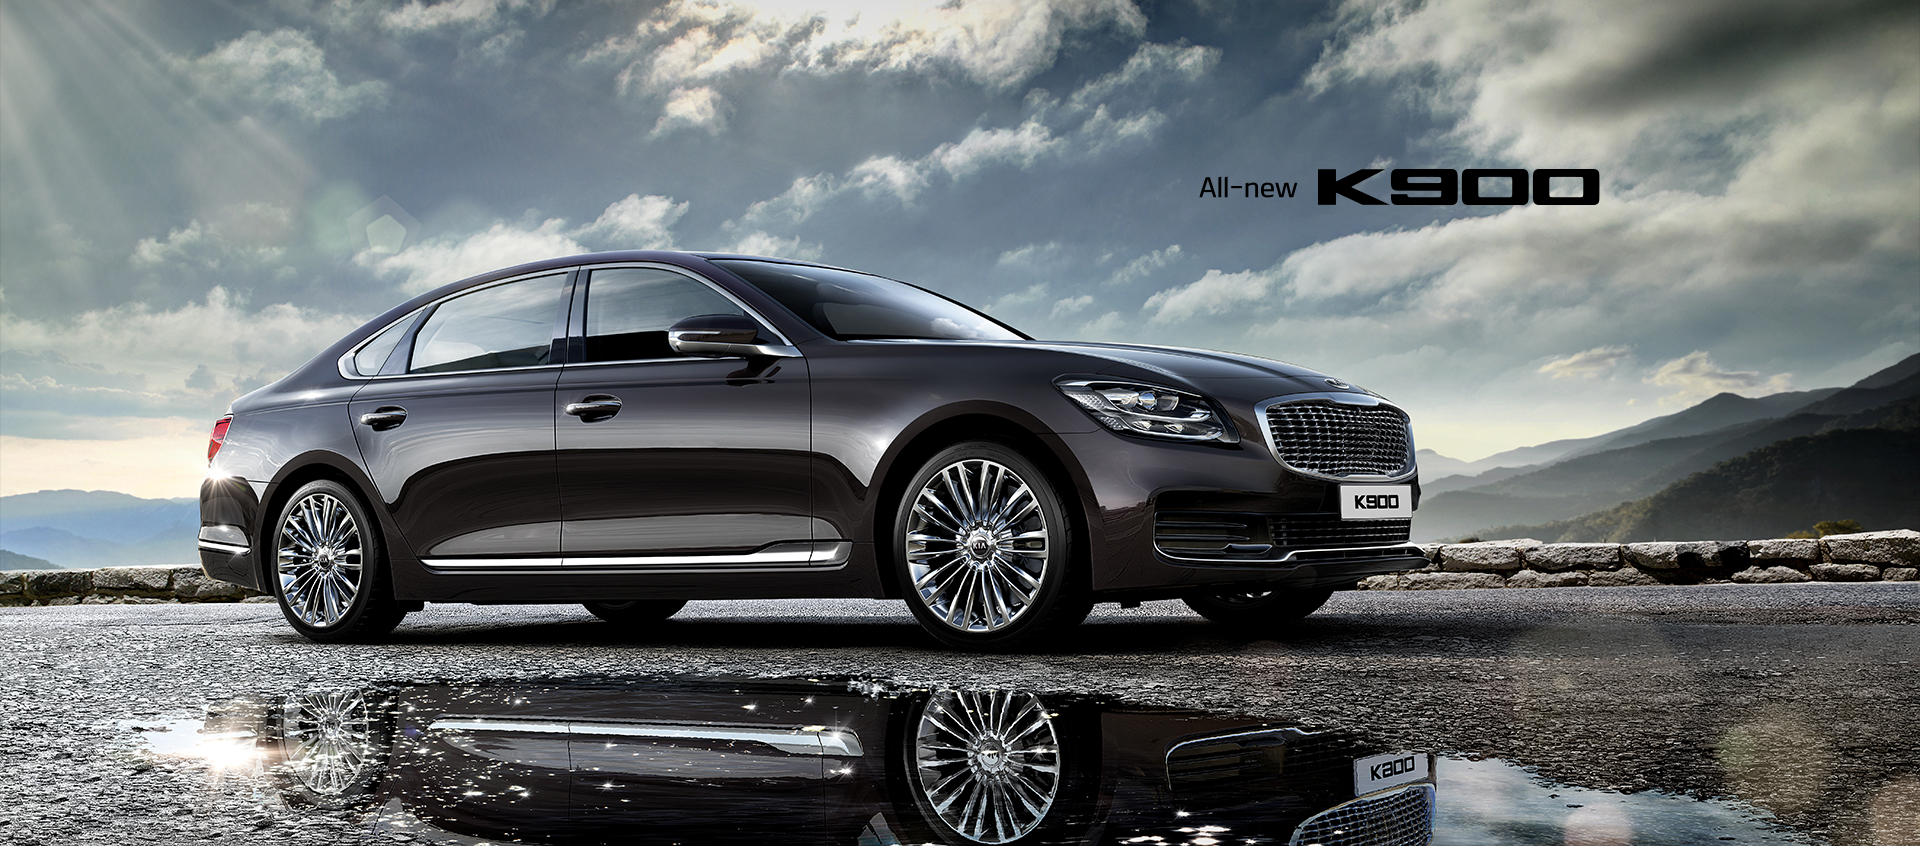 All-new k900